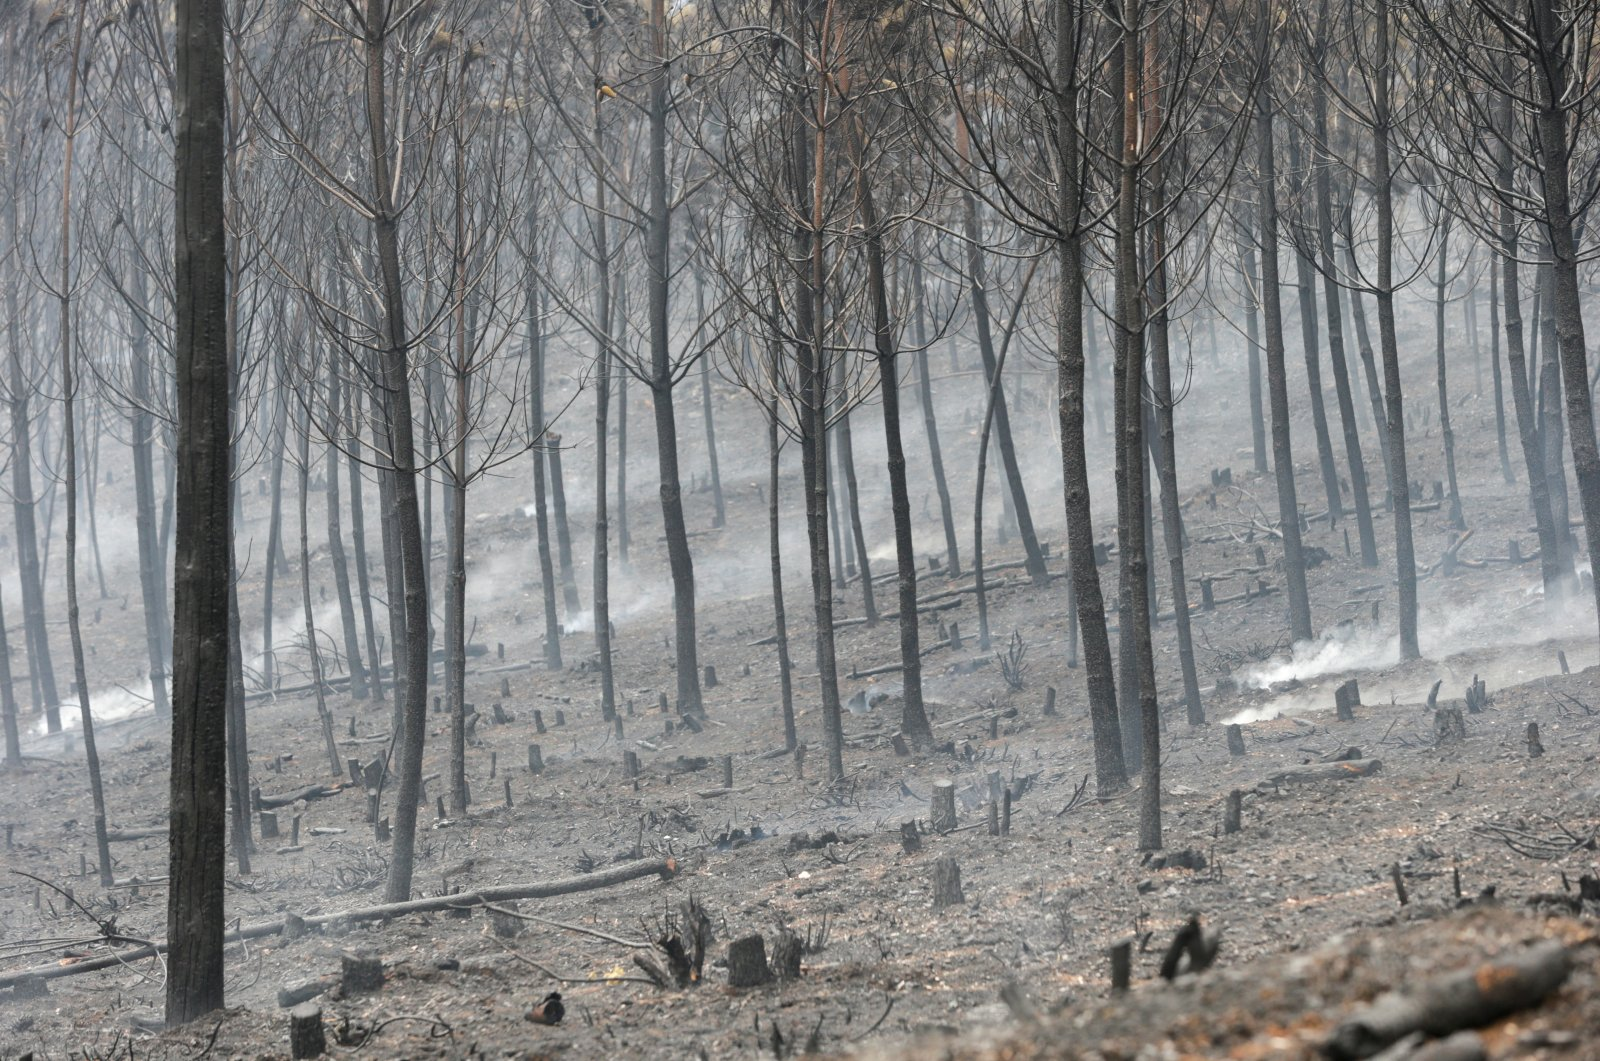 Burnt trees are seen after a wildfire near Ribas de Sil, northwestern Spain, Sept. 7, 2021. (Reuters Photo)